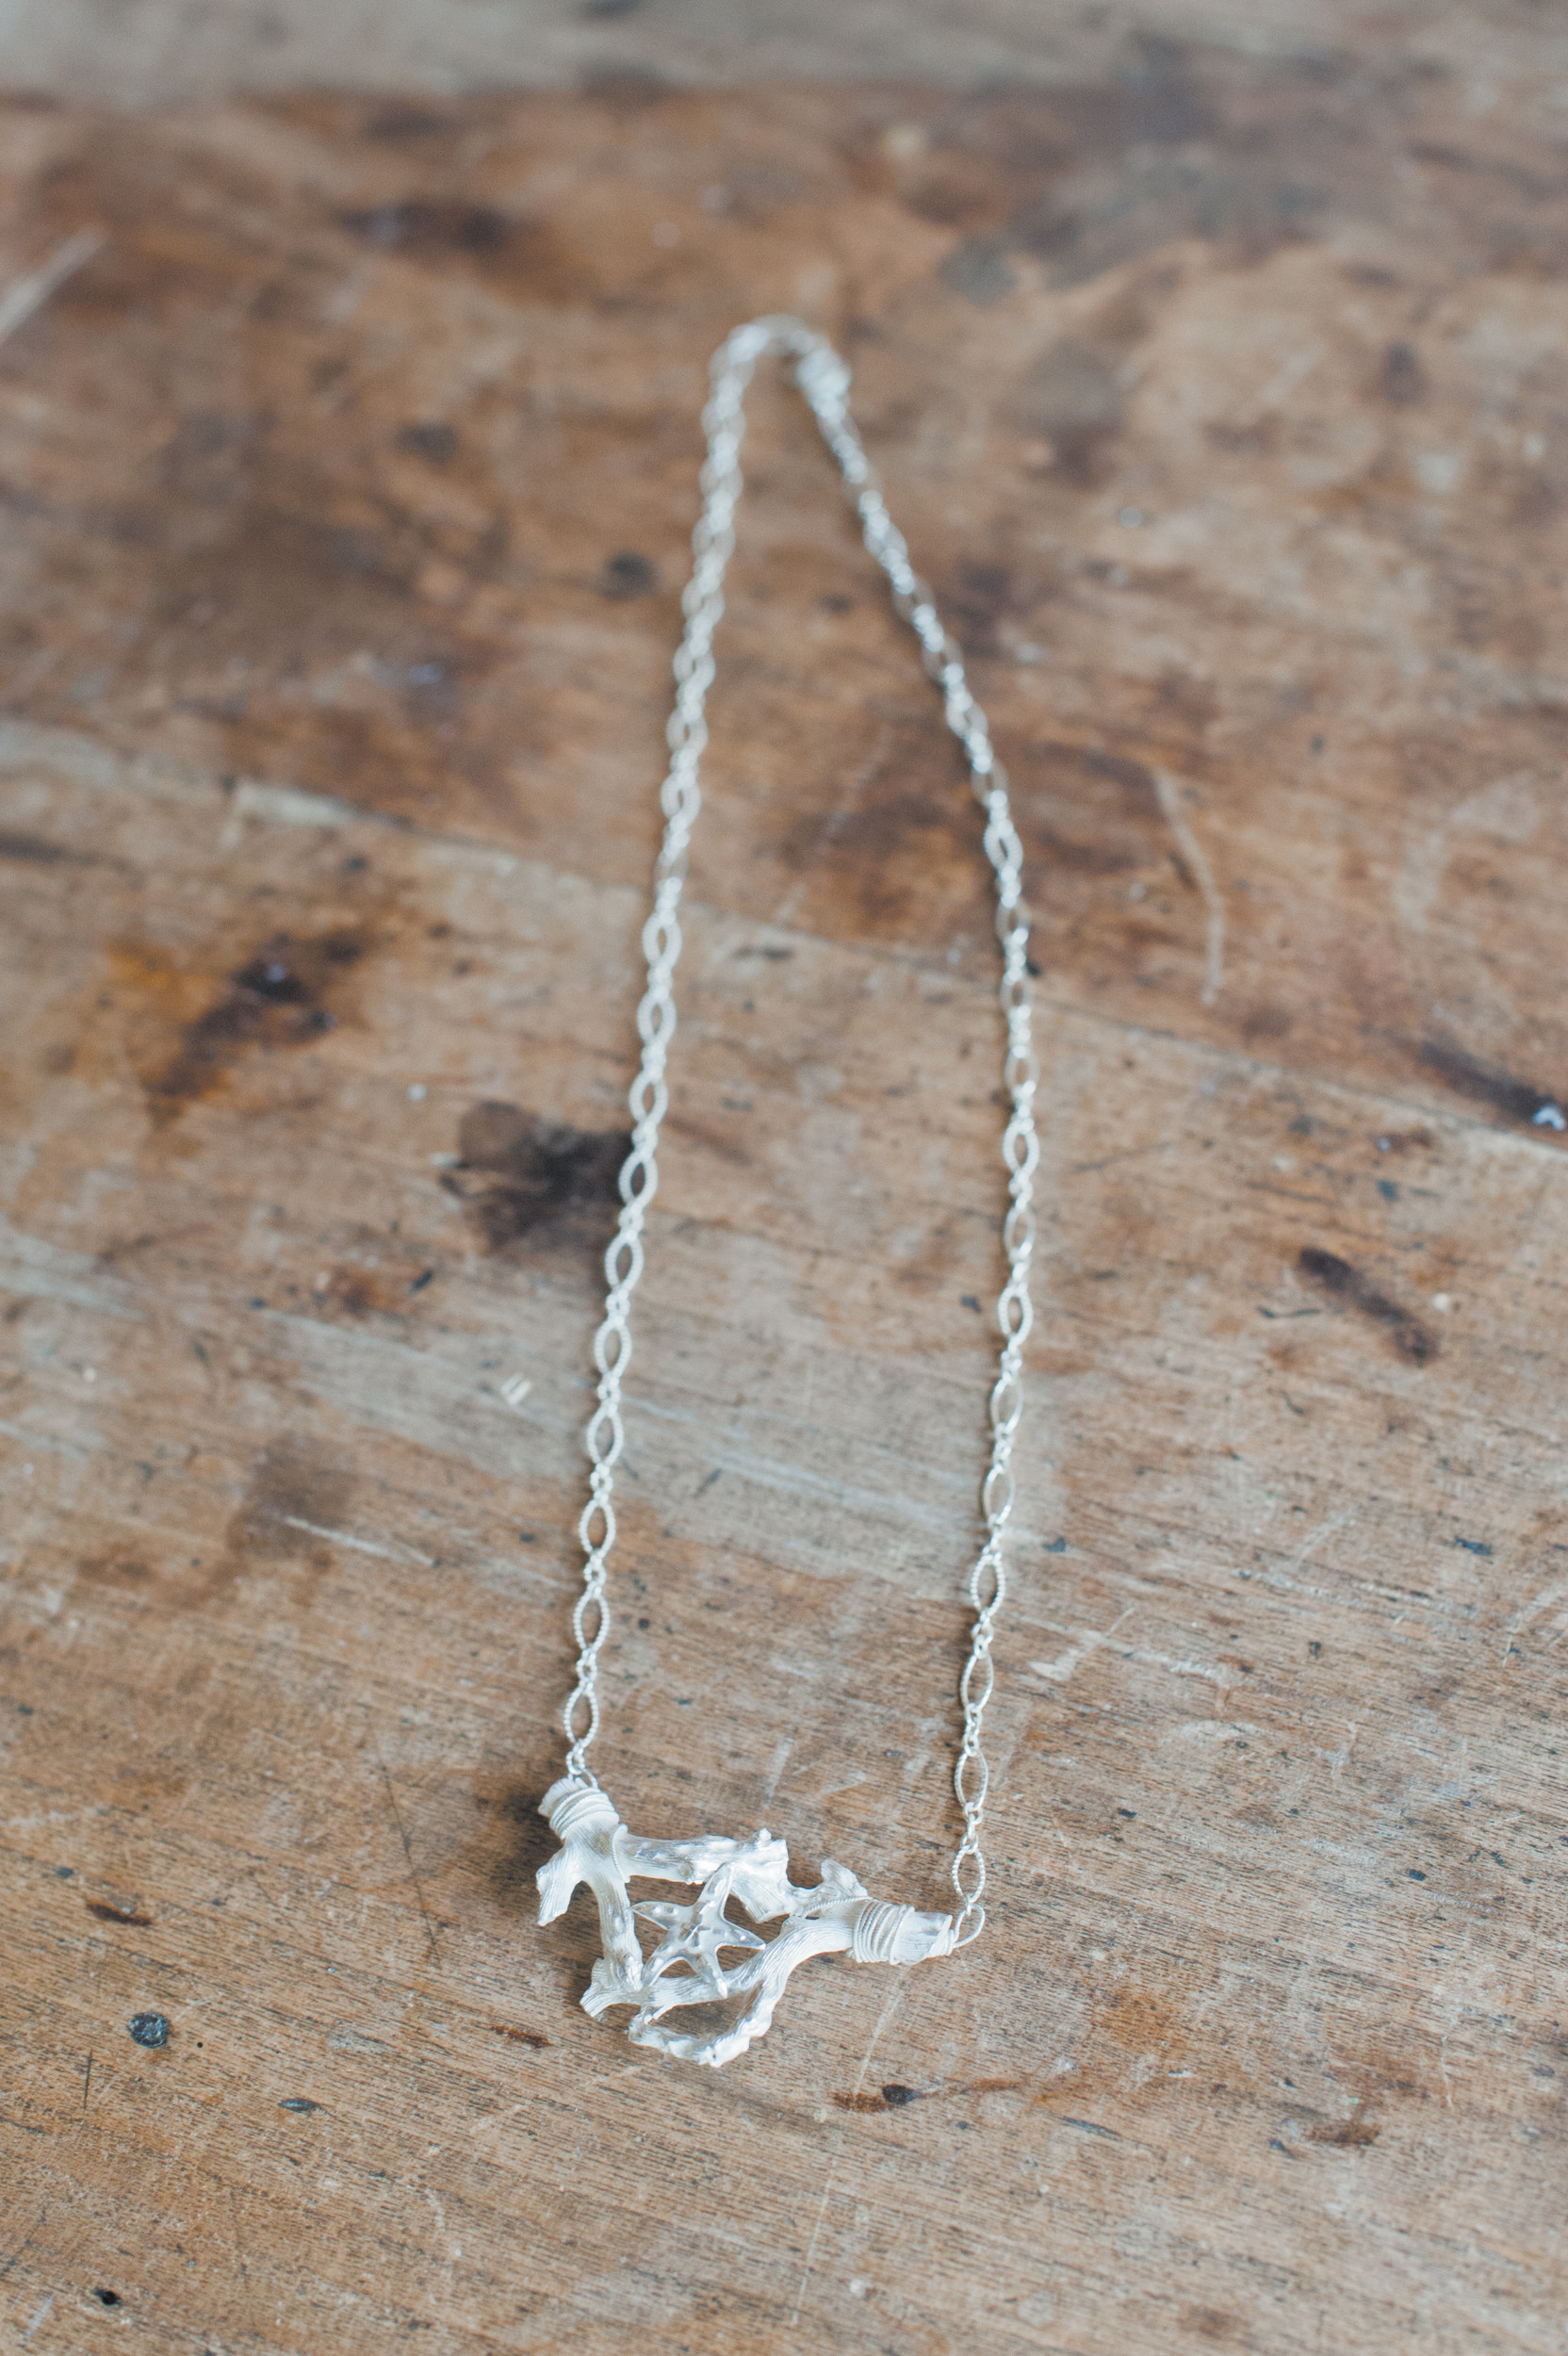 This necklace features a sterling silver casting of red Mediterranean coral with a small starfish.